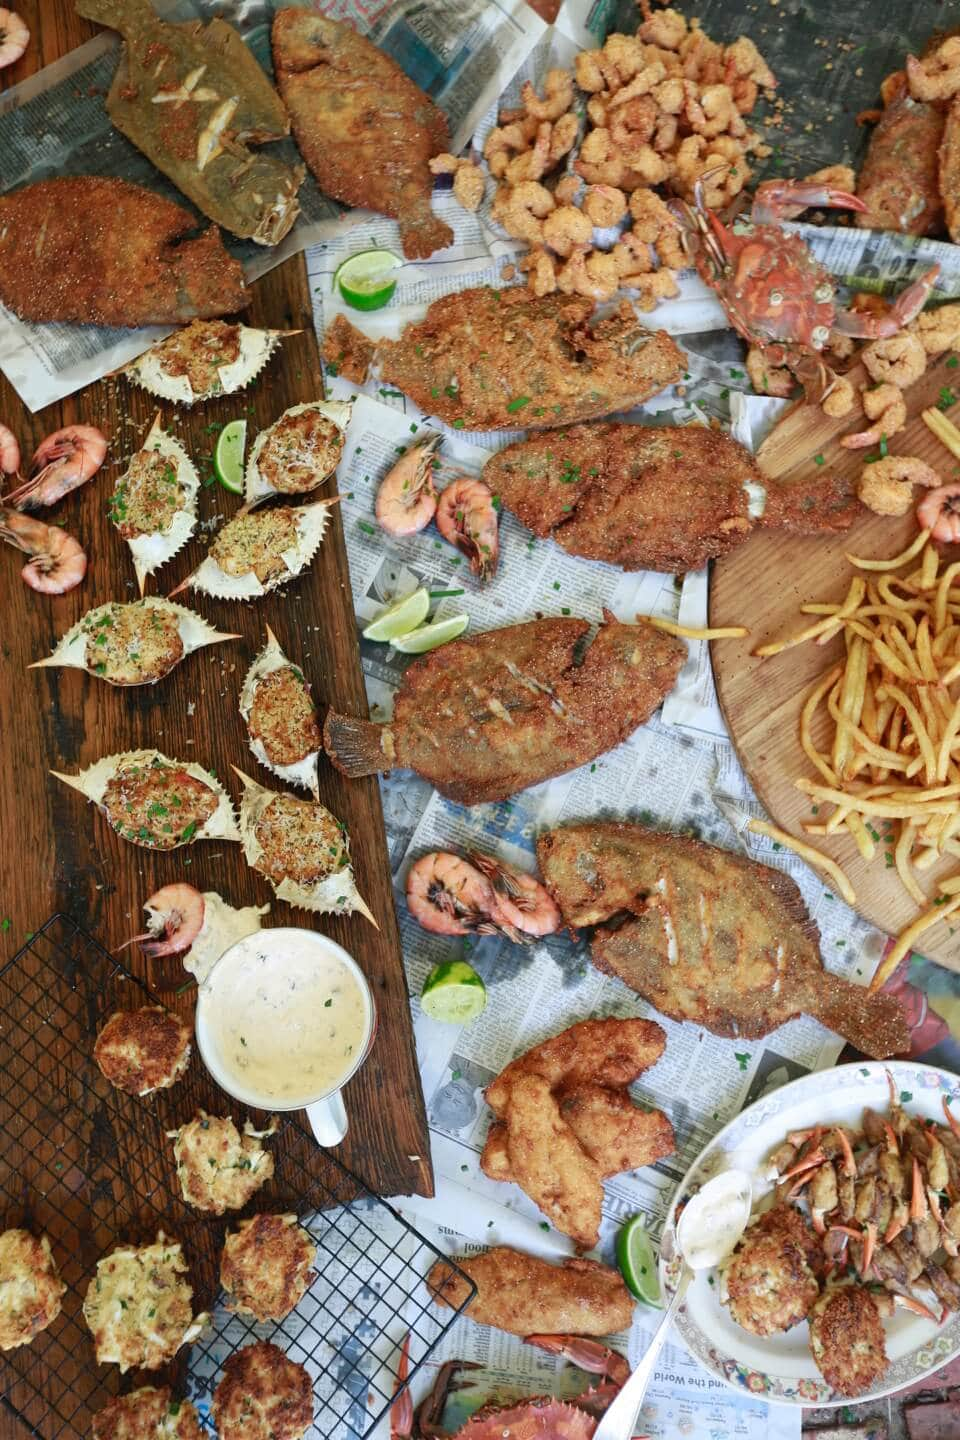 Assortment of fried seafood, fish fry after catching shrimp crab and fish at the beach